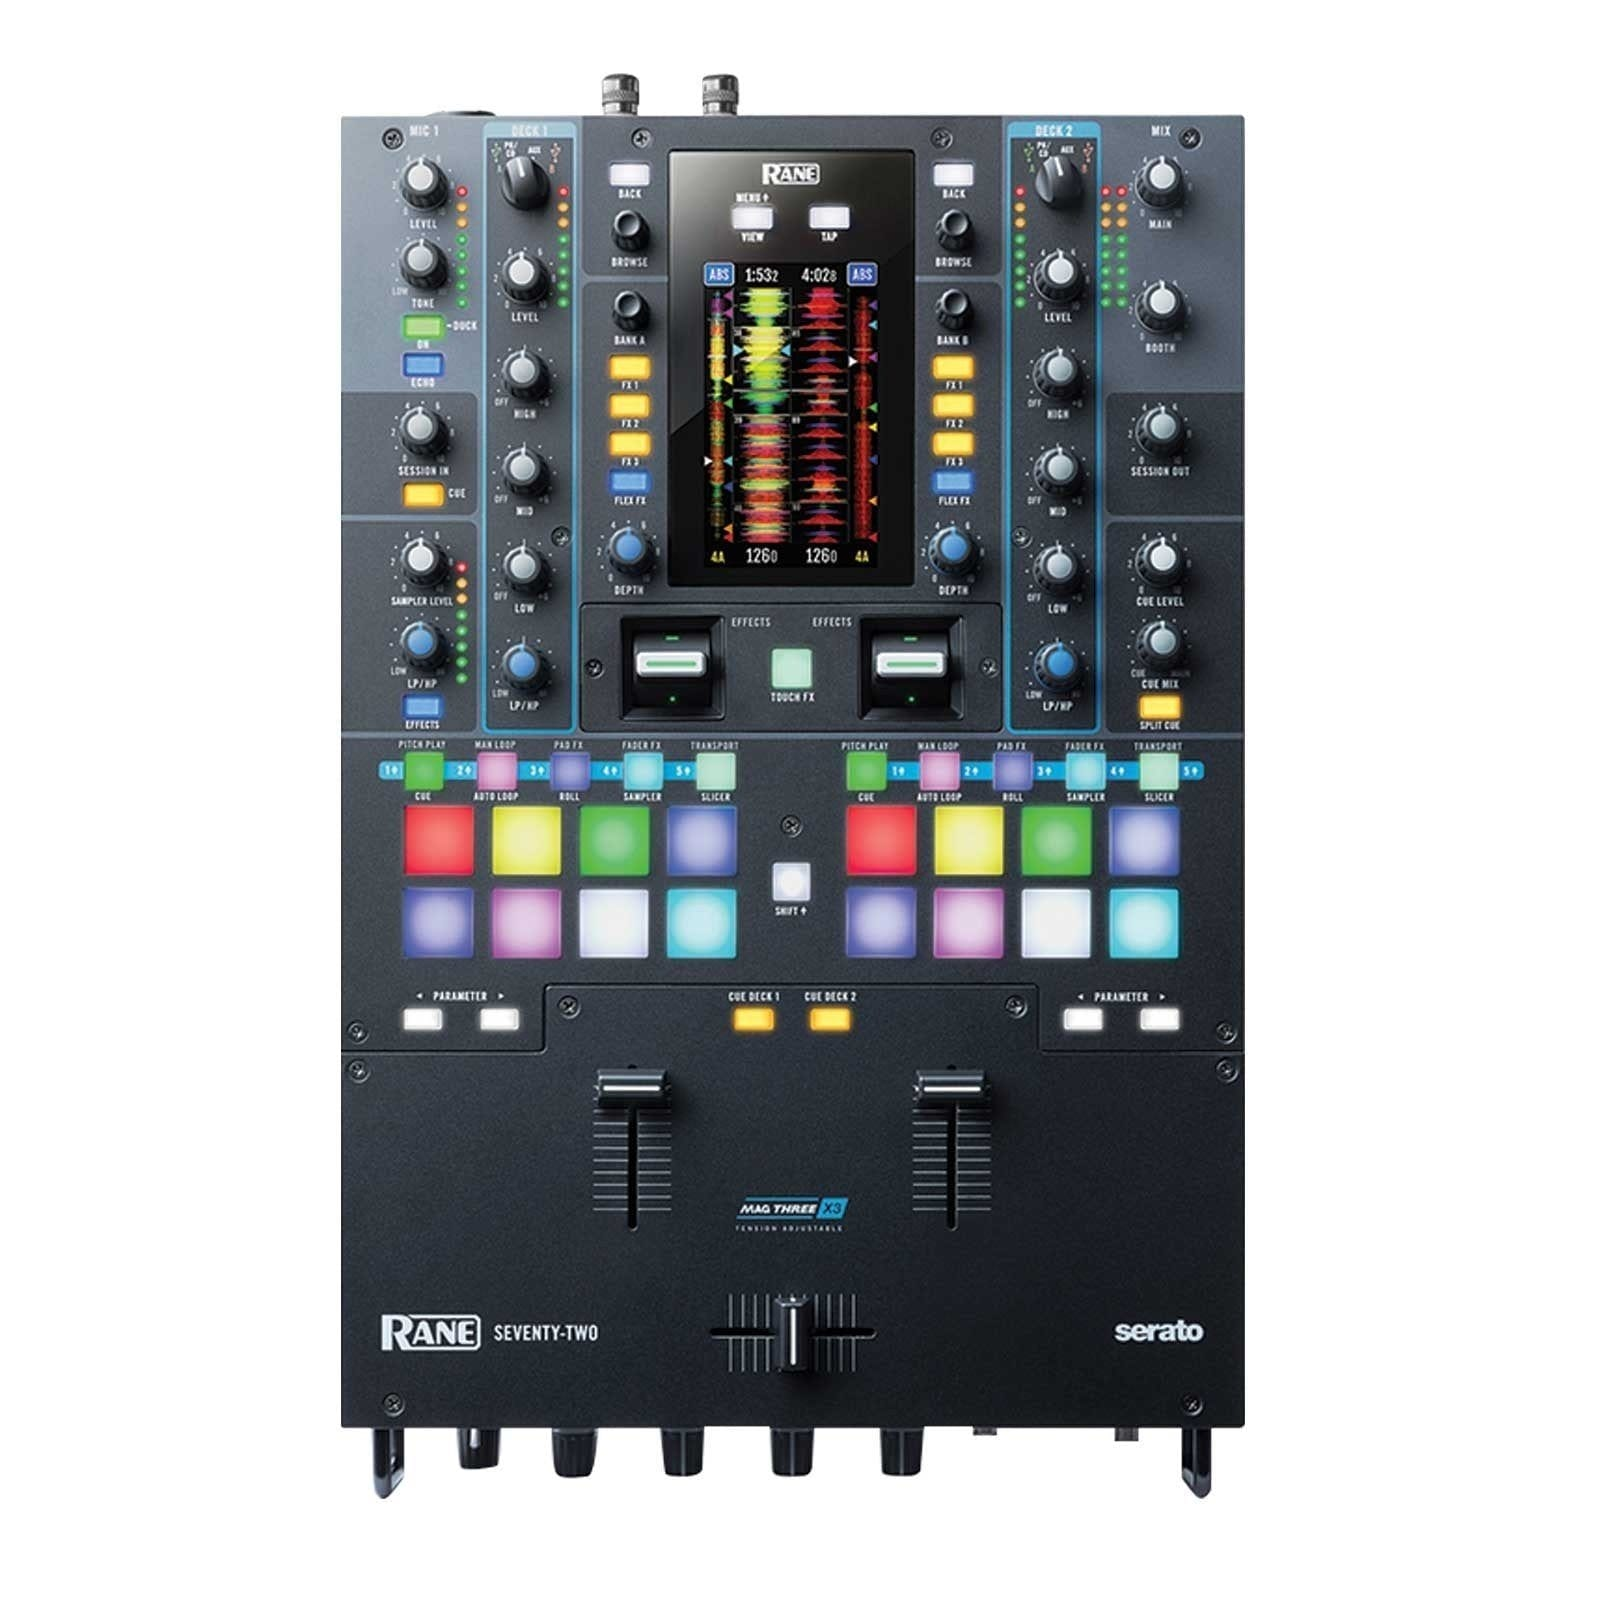 rane-seventy-two-2-deck-performance-mixer-with-touch-screen-60e